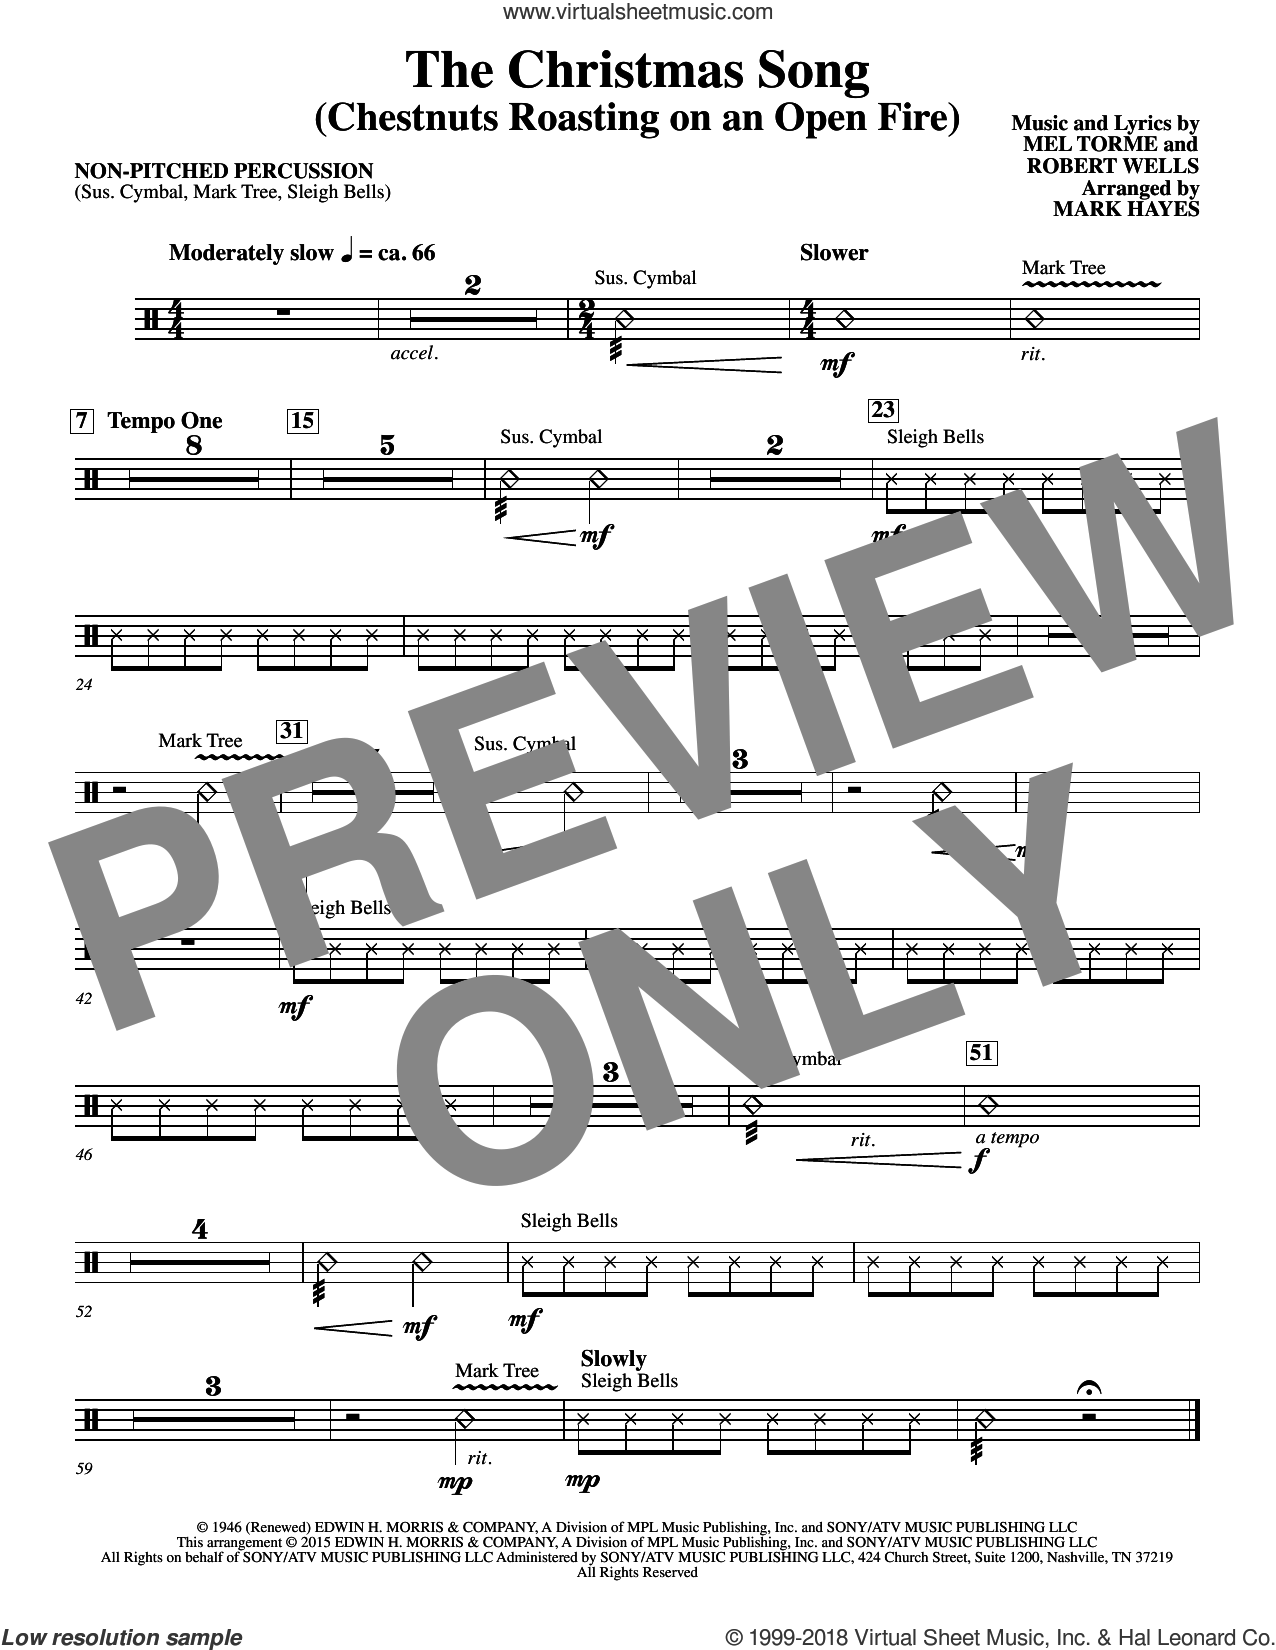 The Christmas Song (Chestnuts Roasting On An Open Fire) sheet music for orchestra/band (aux percussion) by Mel Torme, Mark Hayes, Clay Crosse, King Cole Trio, Nat Cole with N. Riddle Orch., Mel Torme and Robert Wells, intermediate skill level